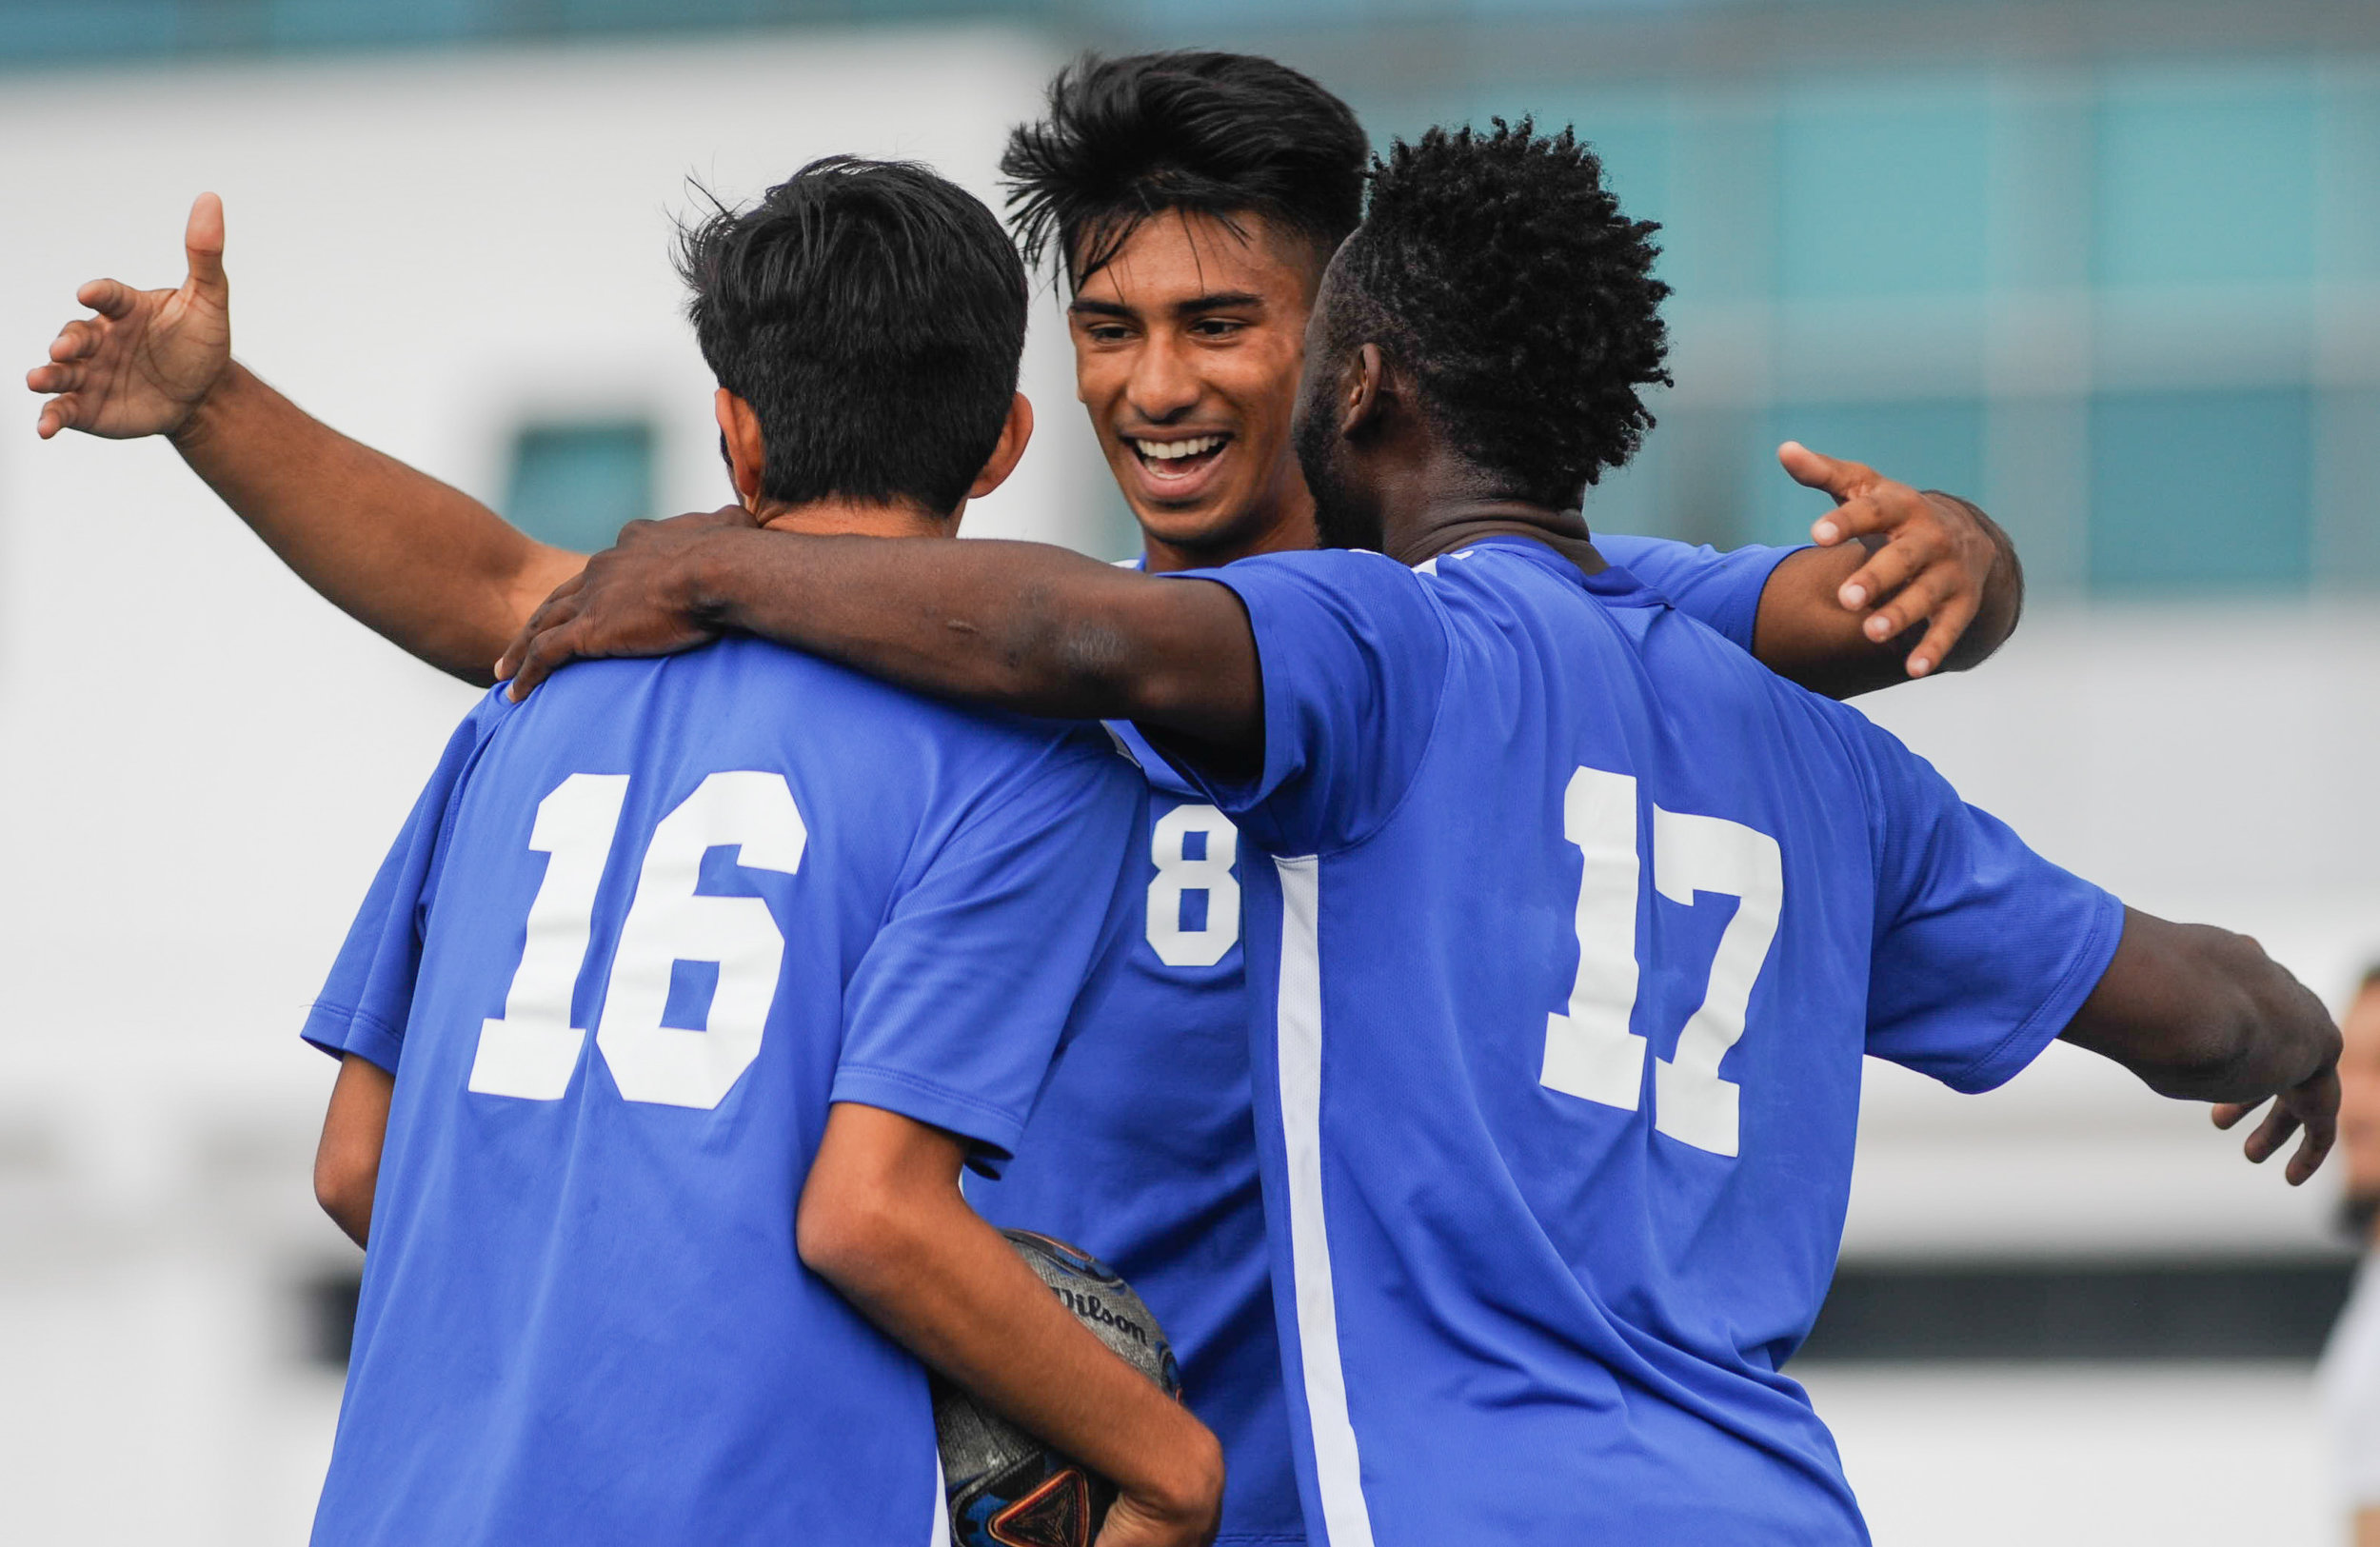 Midfielder Carlos Rincon (16,Left) is embraced by forward Andy Naidu (8,Middle), and midfielder Cyrille Njomo (17,Right) of Santa Monica College as they celebrate Rincon's goal in the first half, the only goal scored by the Corsairs in the match. The Santa Monica College Corsairs end the game tied with the Allan Hancock College Bulldogs 1-1. The match was held at the Corsair Stadium at the Santa Monica College Main Campus in Santa Monica, Calif.. October 31, 2017. (Photo by: Justin Han/Corsair Staff)